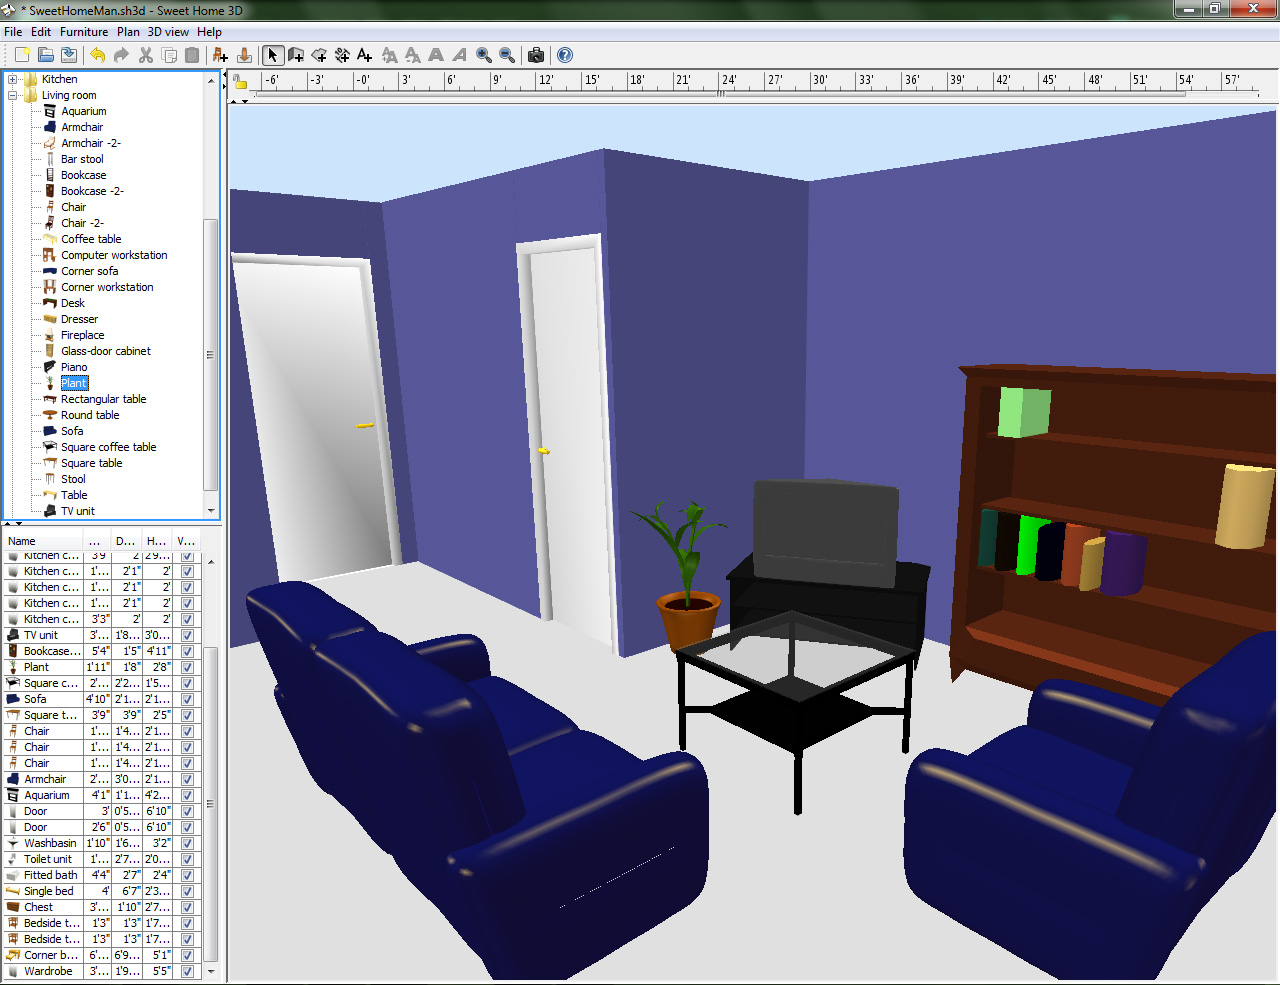 House interior design software Free 3d design software online